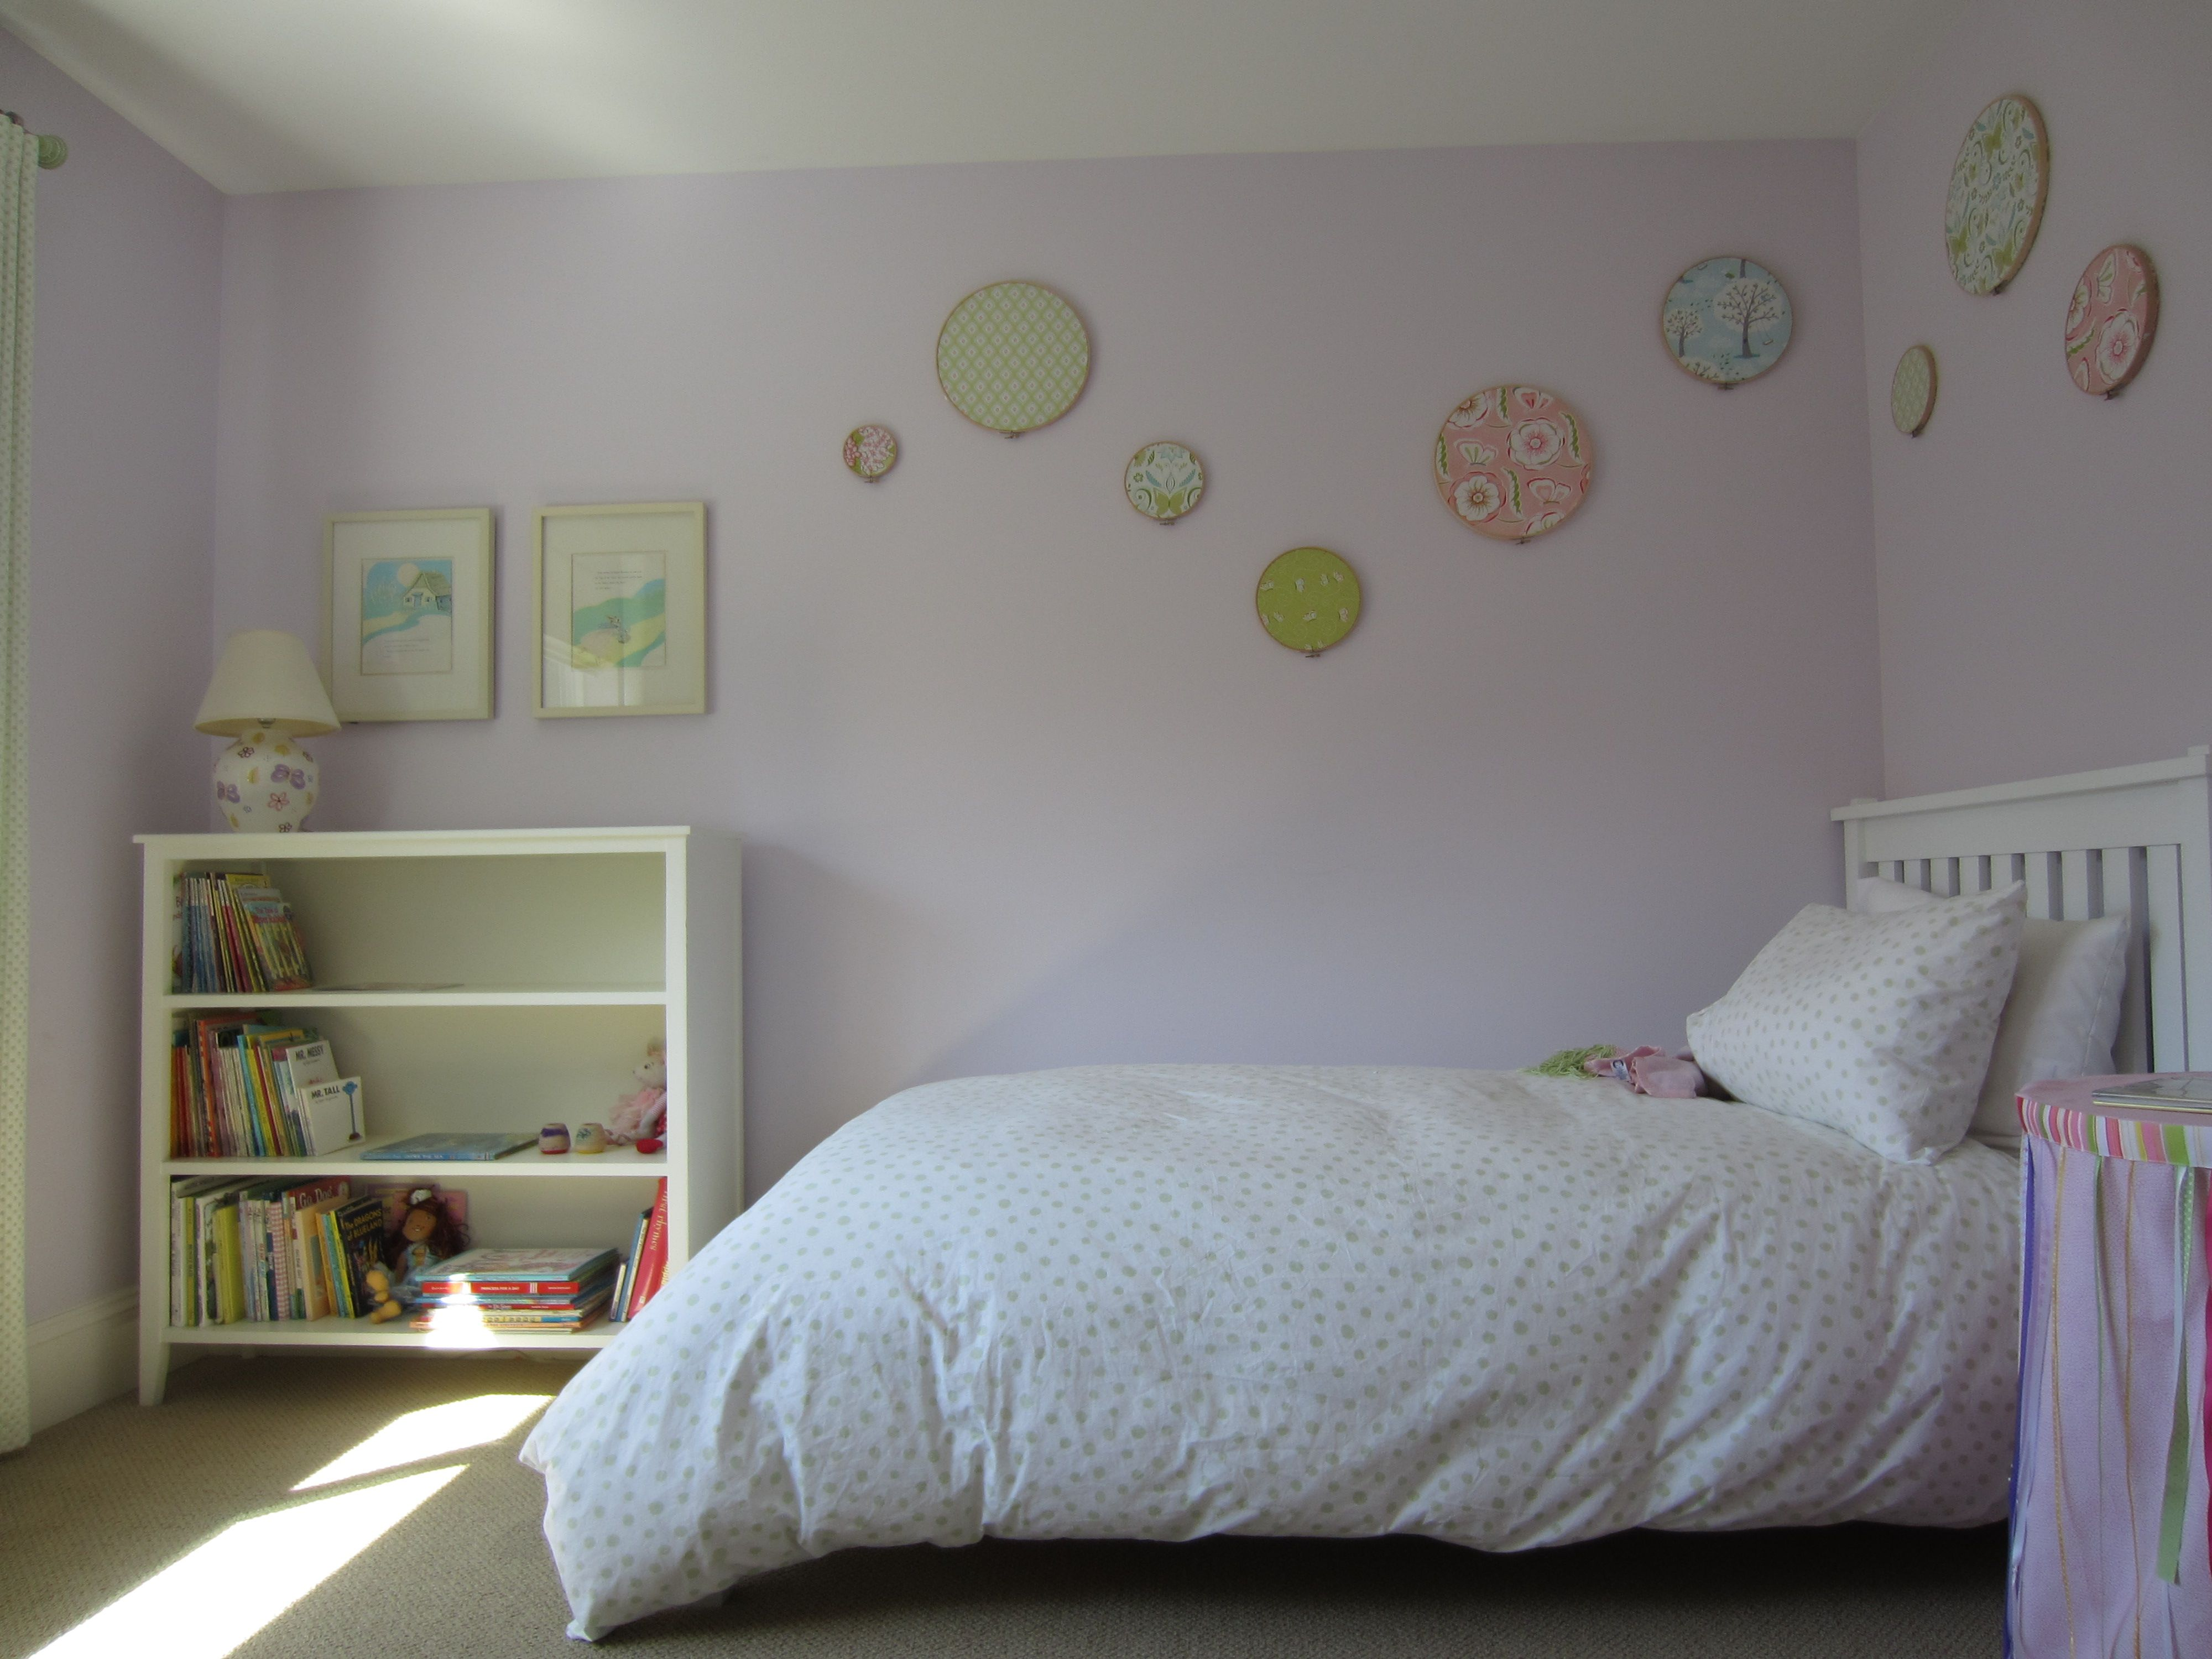 Diy projects for bedroom pinterest fabrichoops  ideas tips tricks u diy projects  pinterest  babies